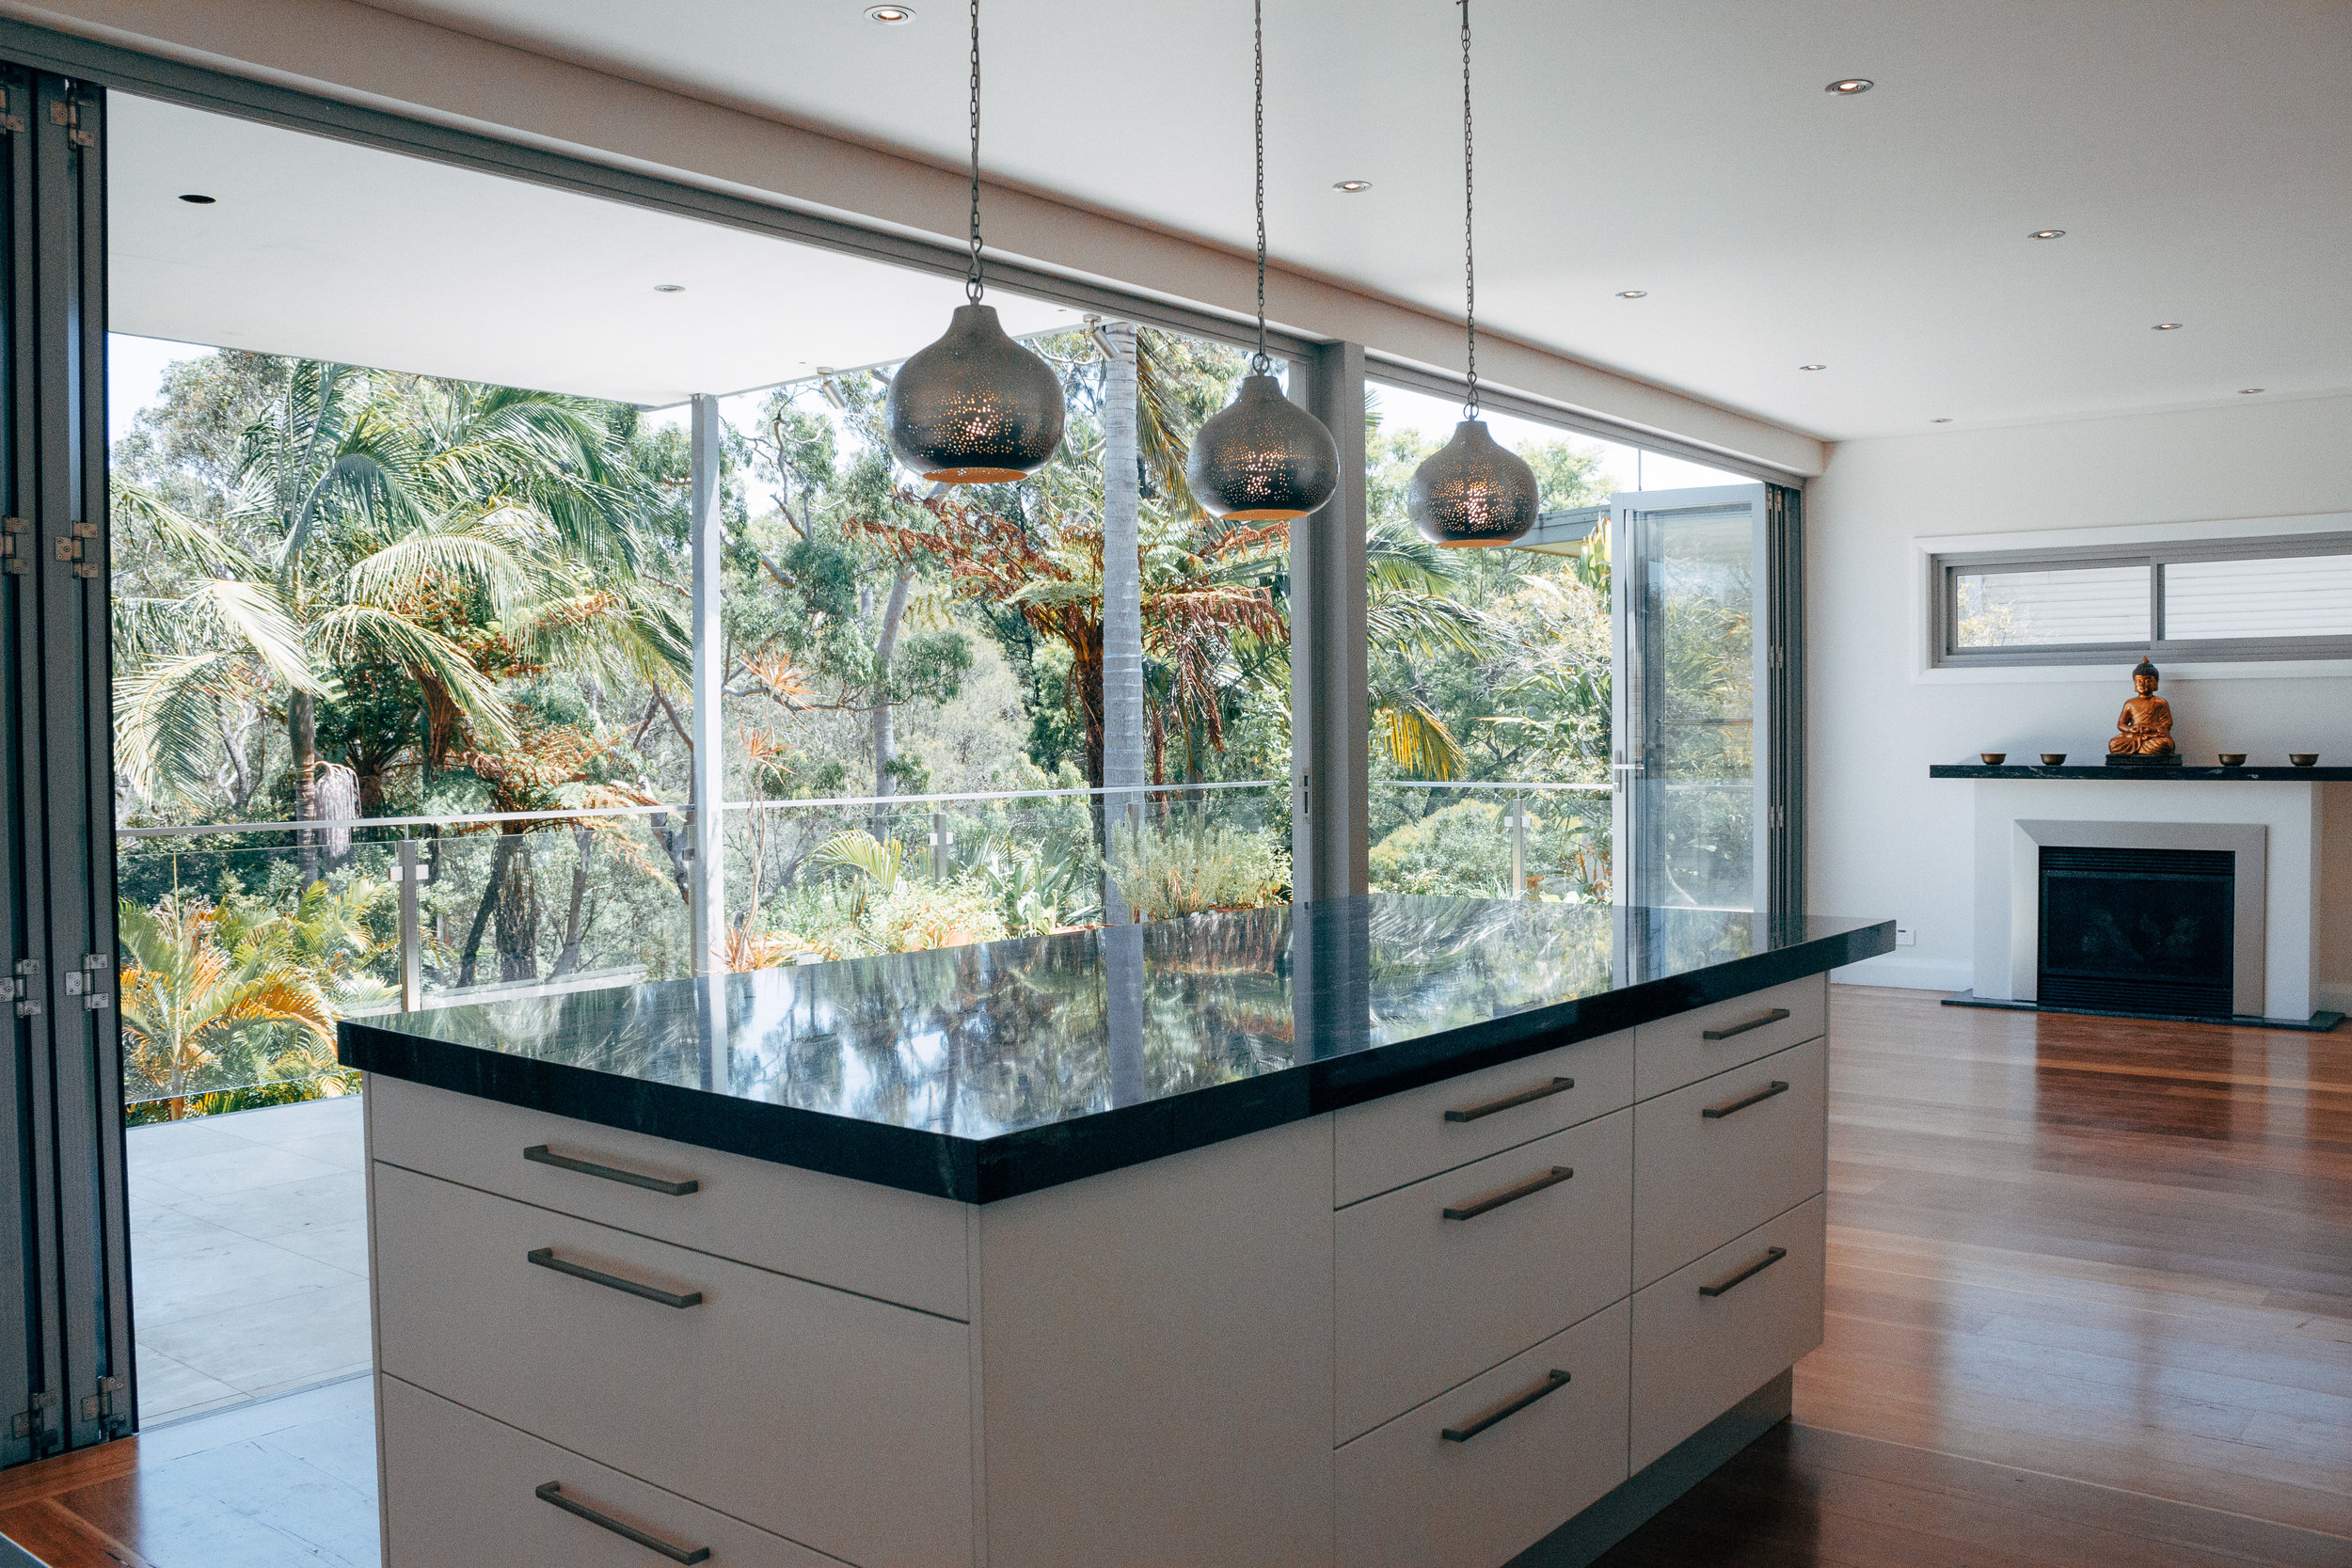 KITCHEN AND OUTDOOR LIVING OF MAJOR RESIDENTIAL RENOVATION FOR MINDFUL BUILDING - 2013, EAST RYDE, NSW